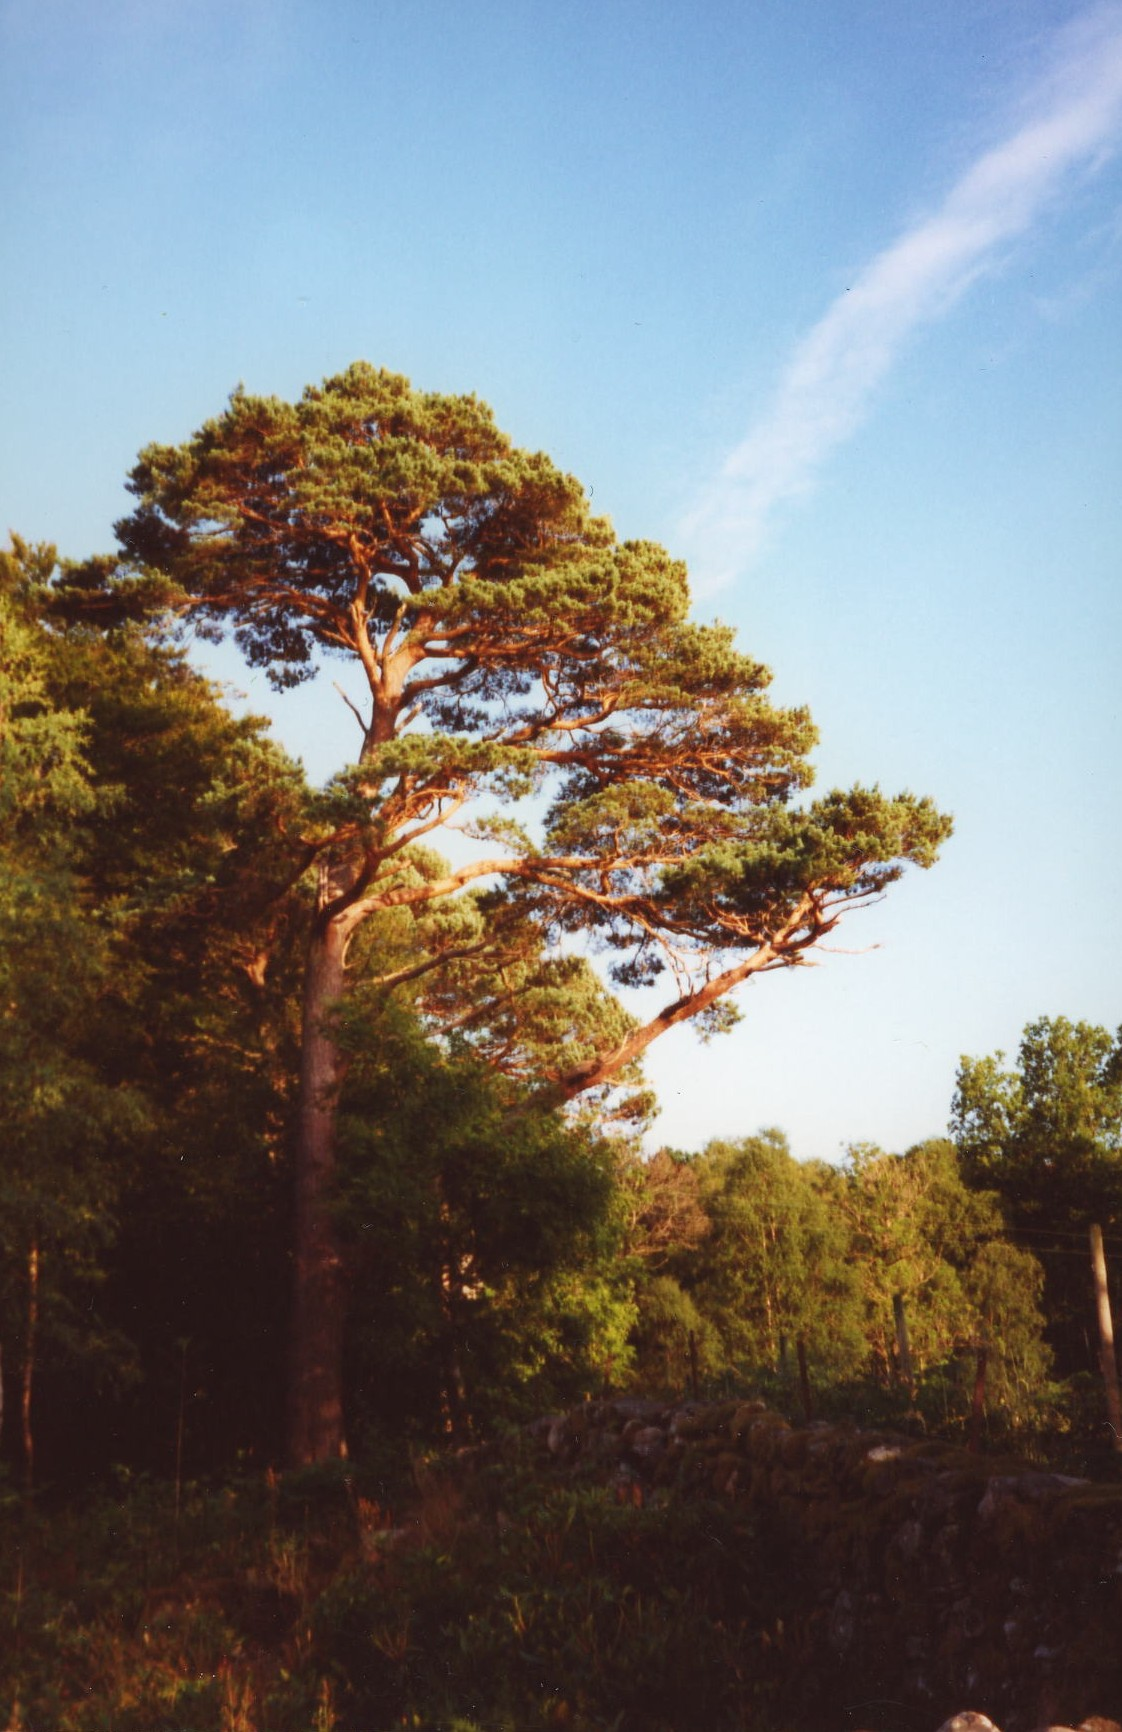 Scot's Pine at Policy Gate